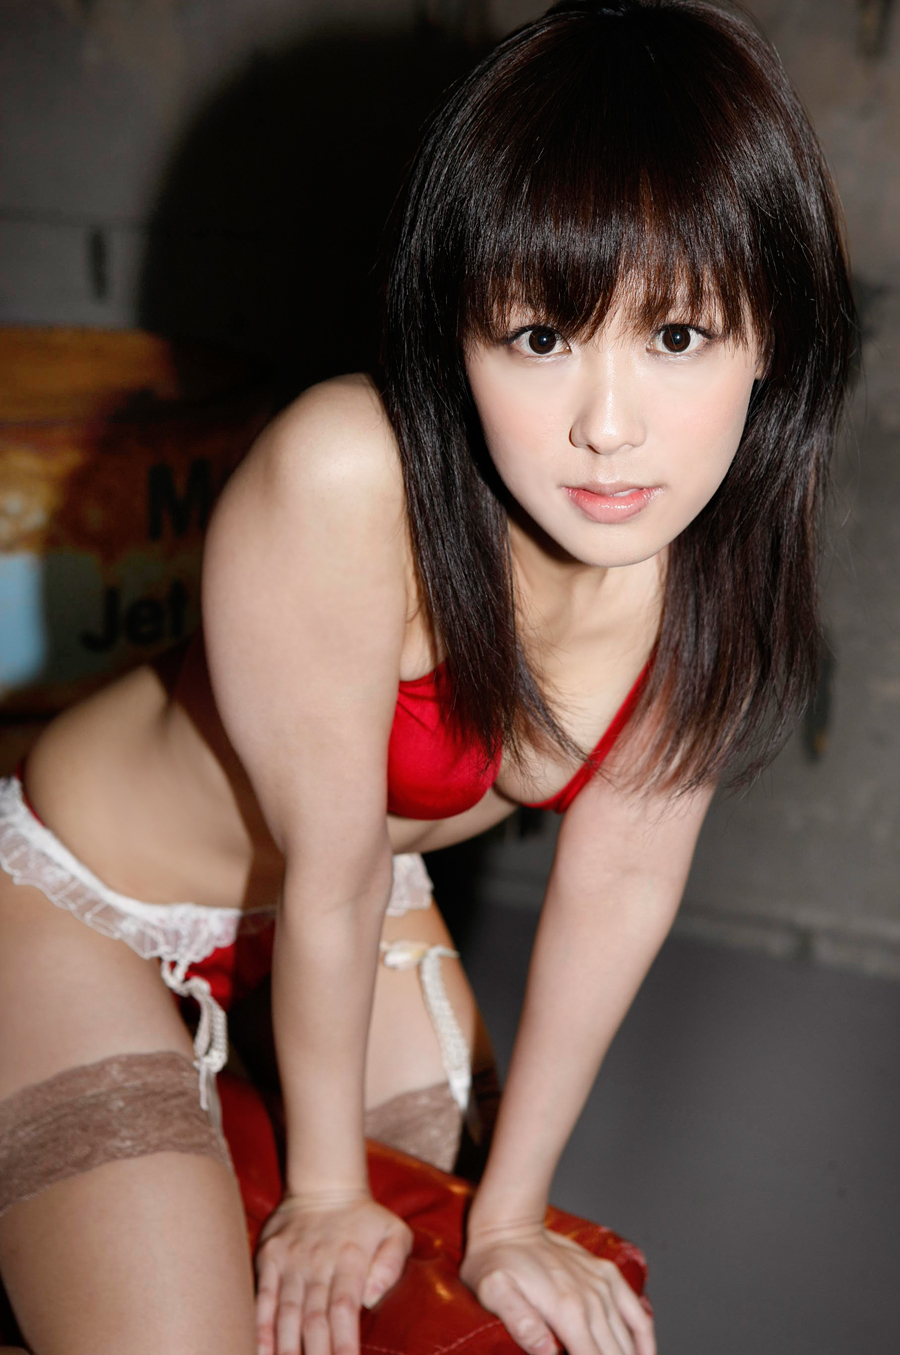 093-jpg [Princess Collection] Kyoko Kawai 可愛きょうこ 091-100 [10P32MB] 10120